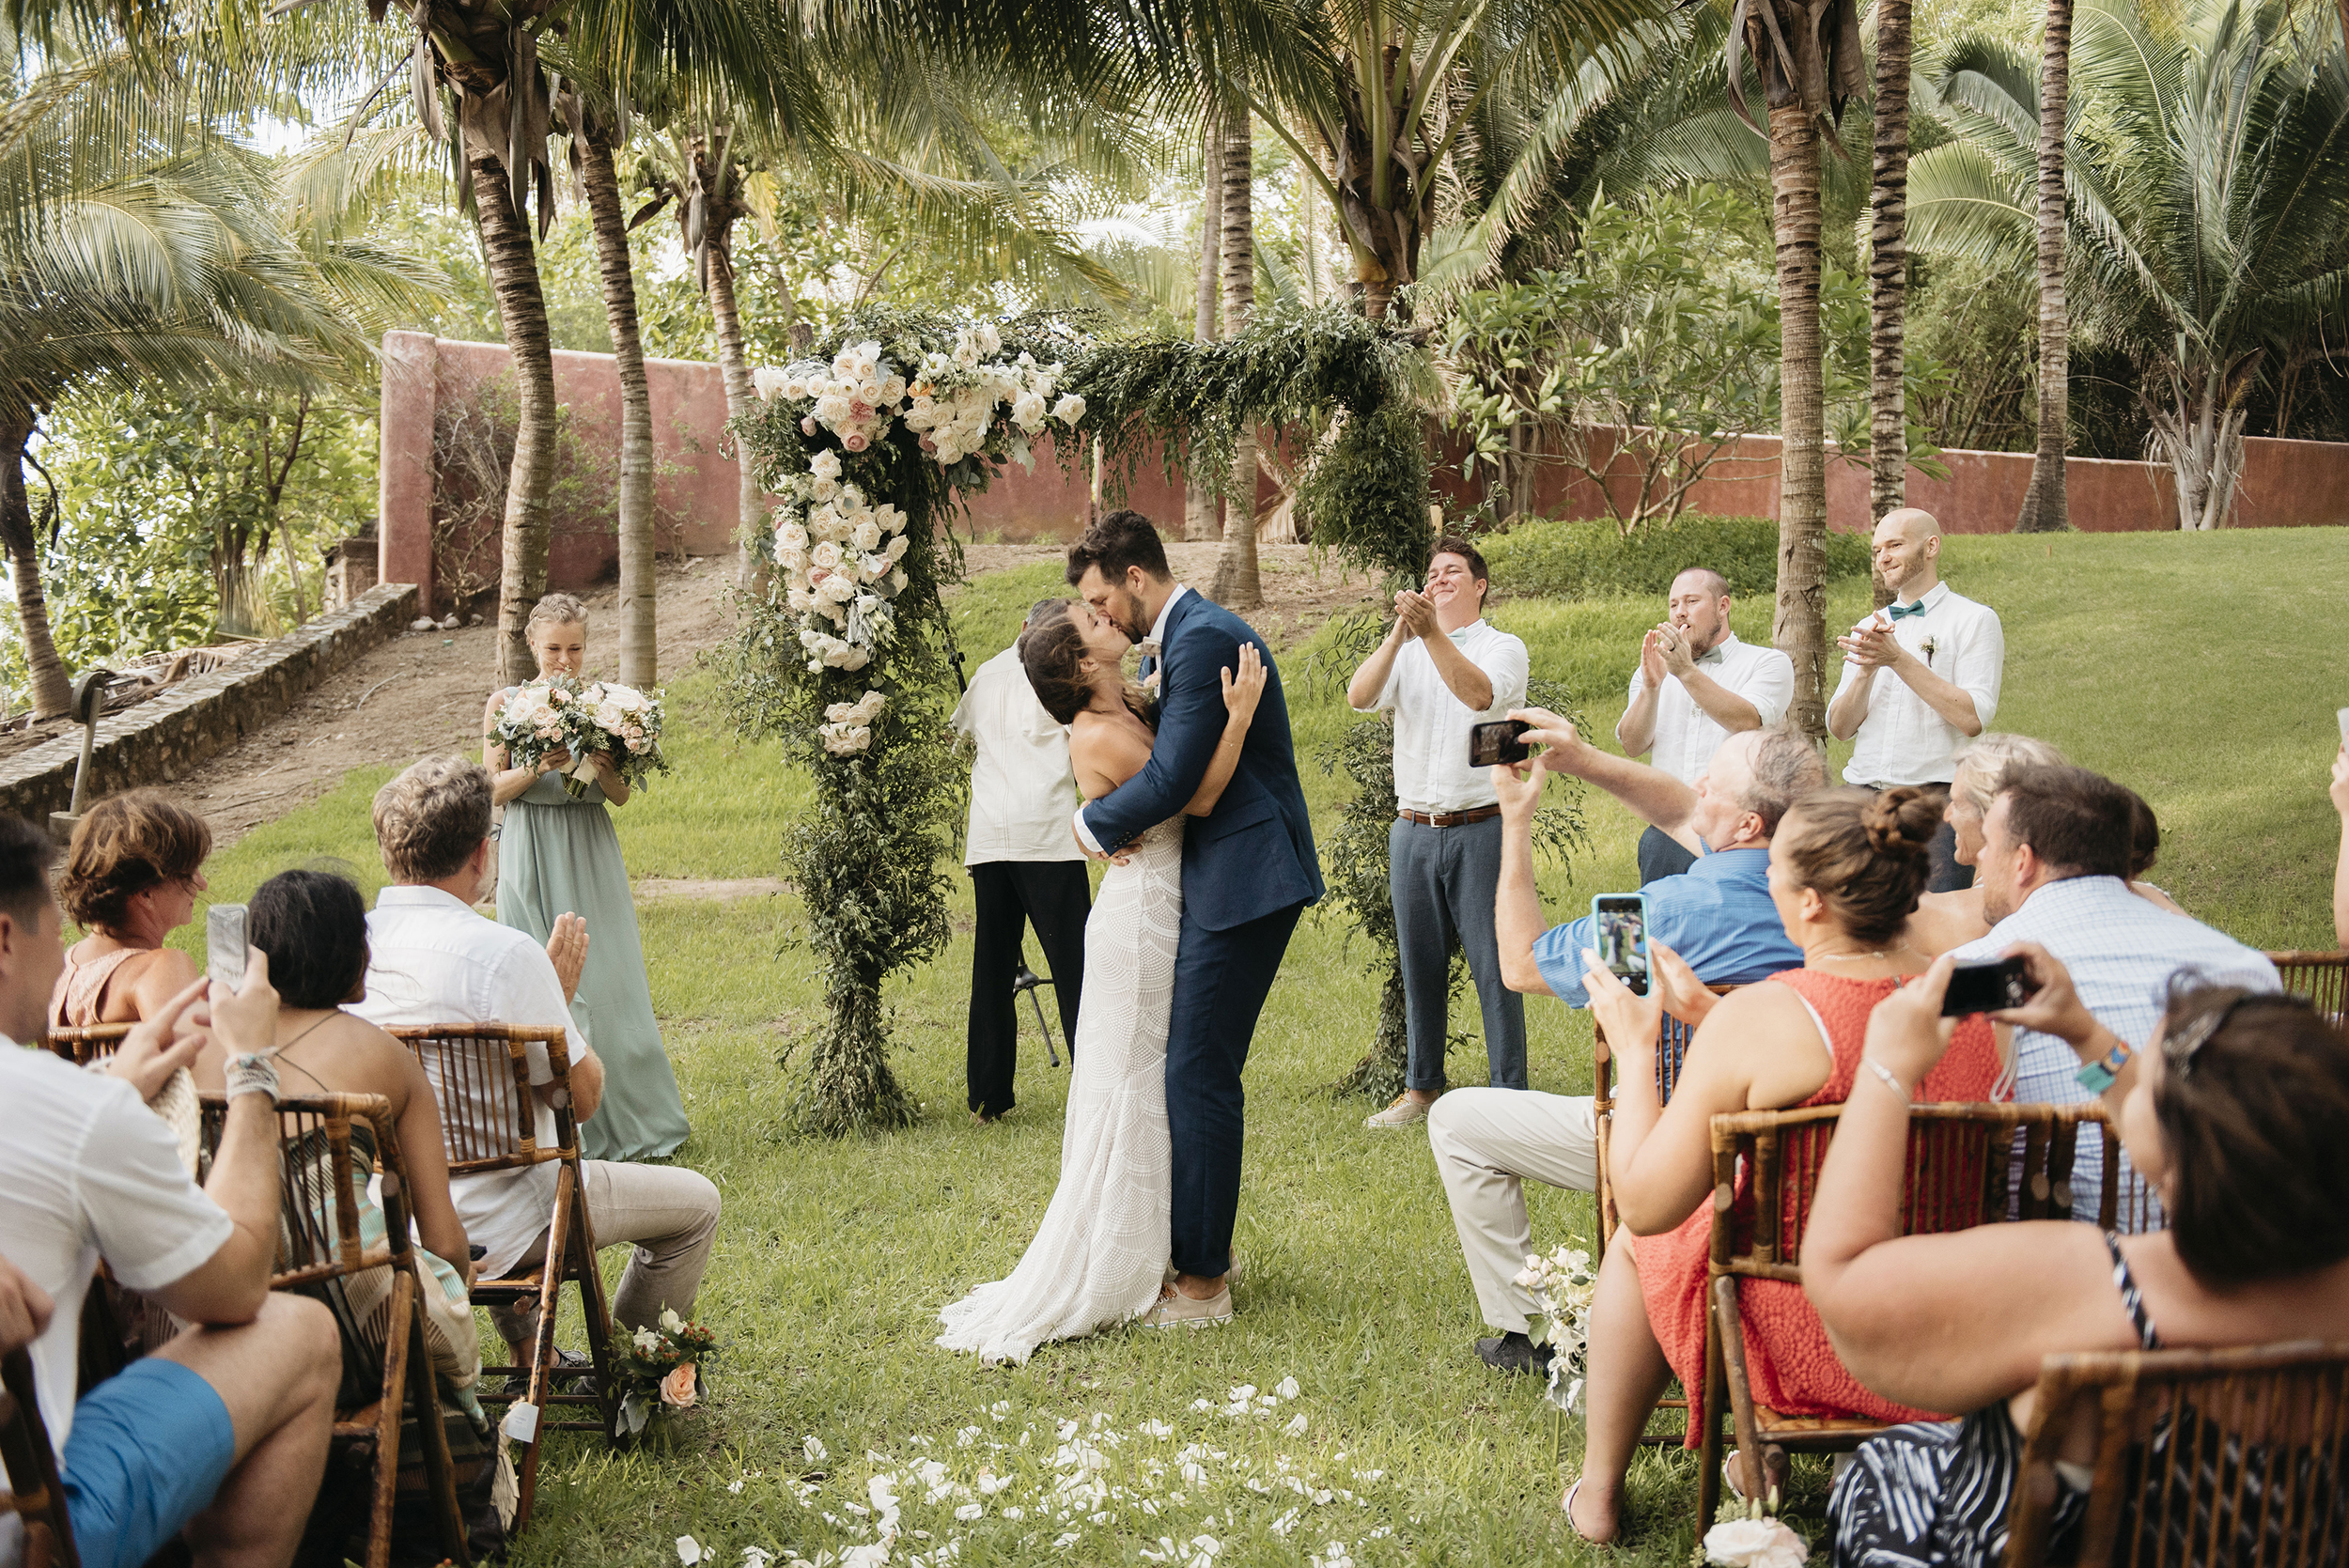 Colby-and-Jess-Intimate-Destination-Wedding-Sayulita-Puerto-Vallarta-Mexico356.jpg